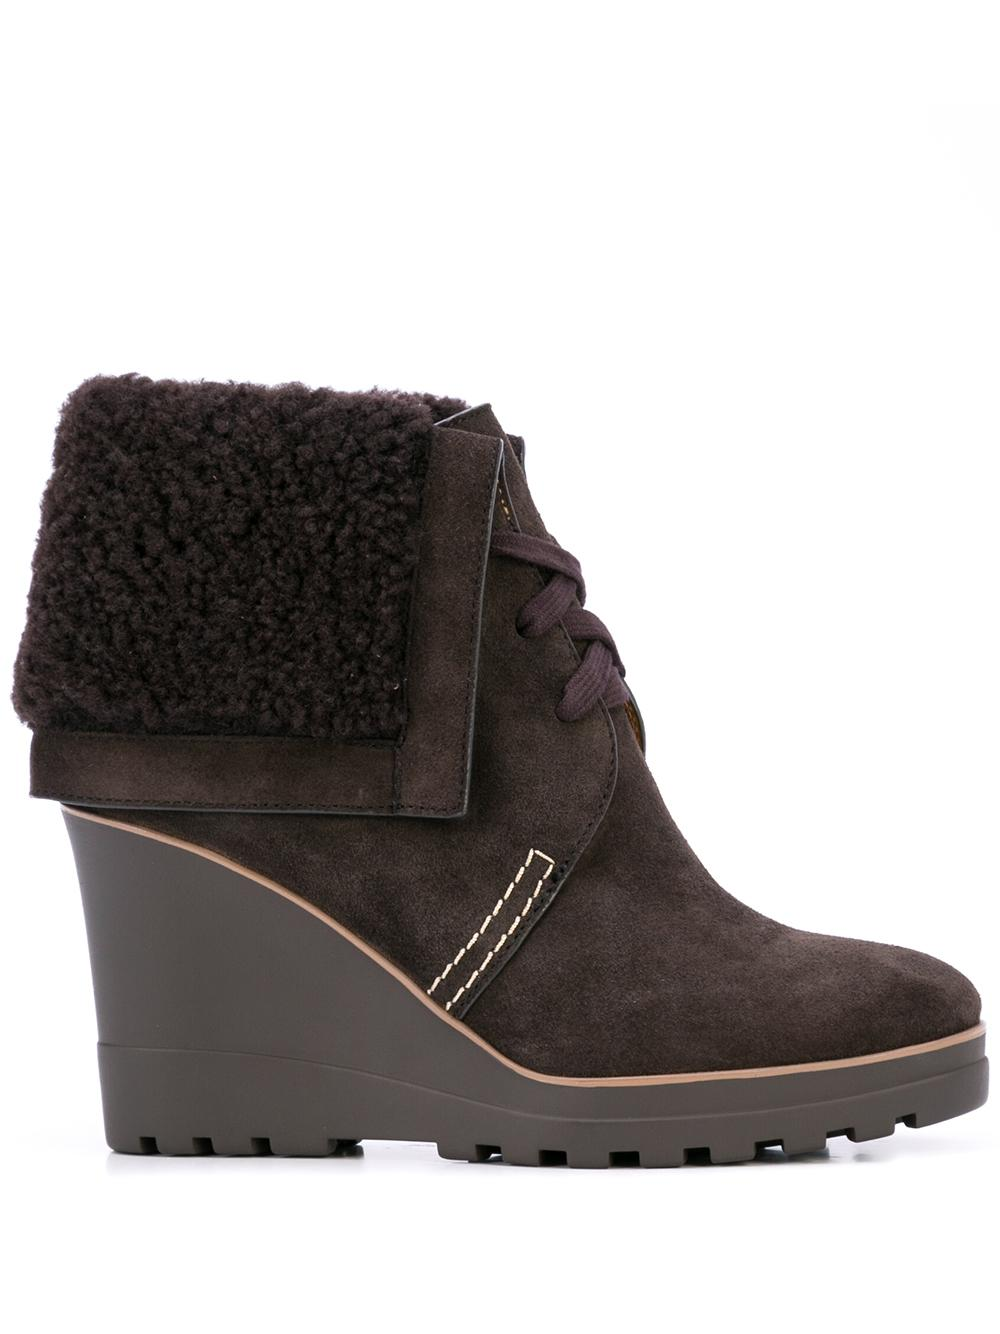 Suede Wedge Bootie With Shearling